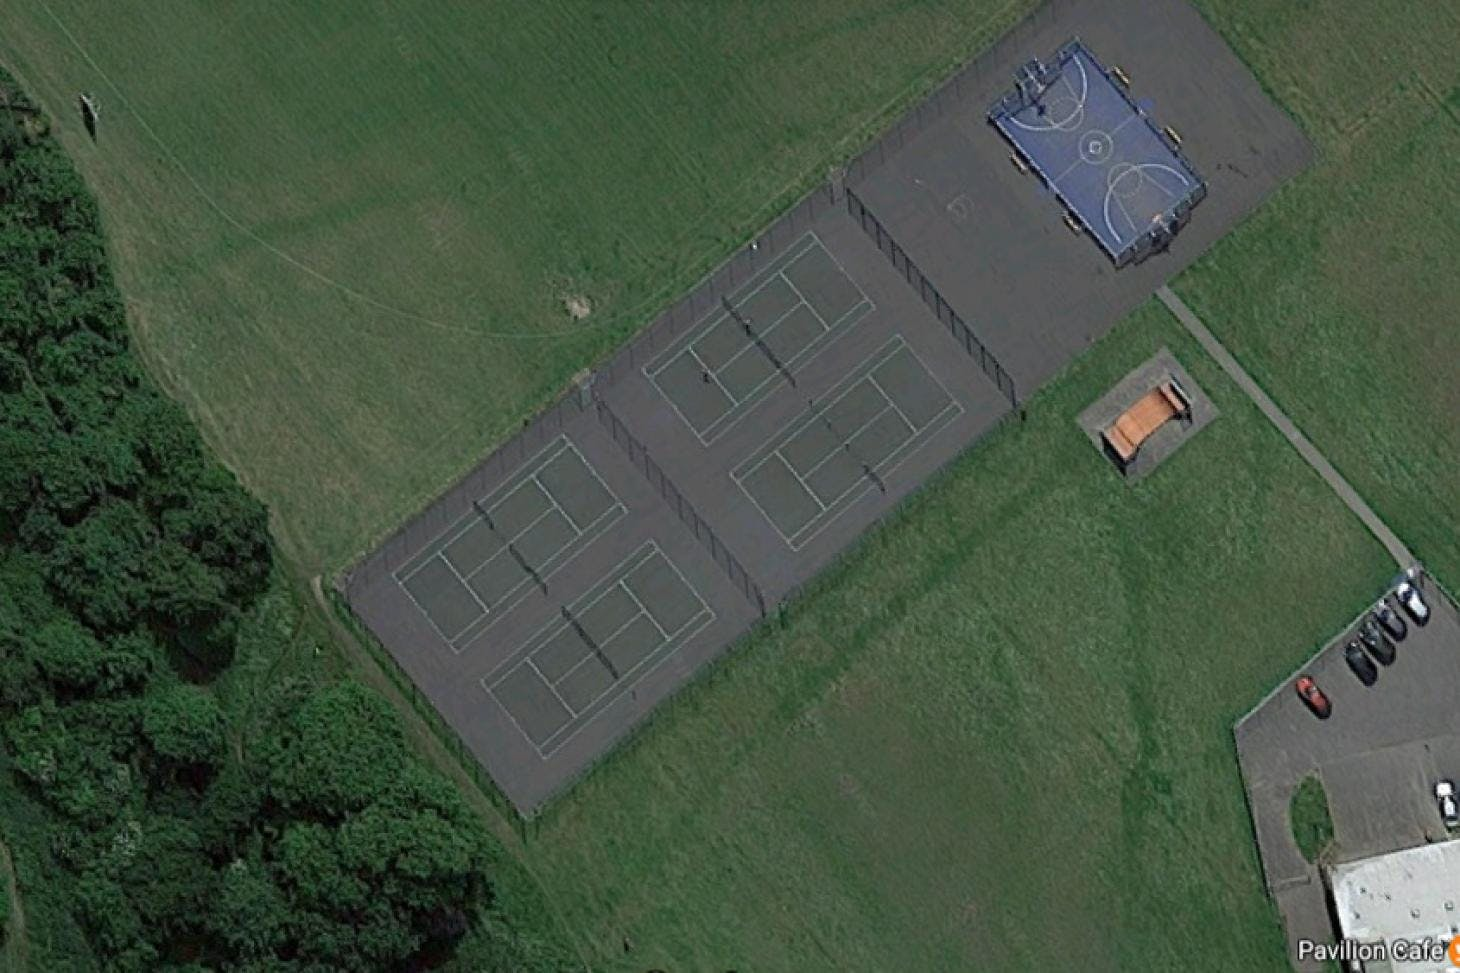 Beddington Park Outdoor | Hard (macadam) tennis court